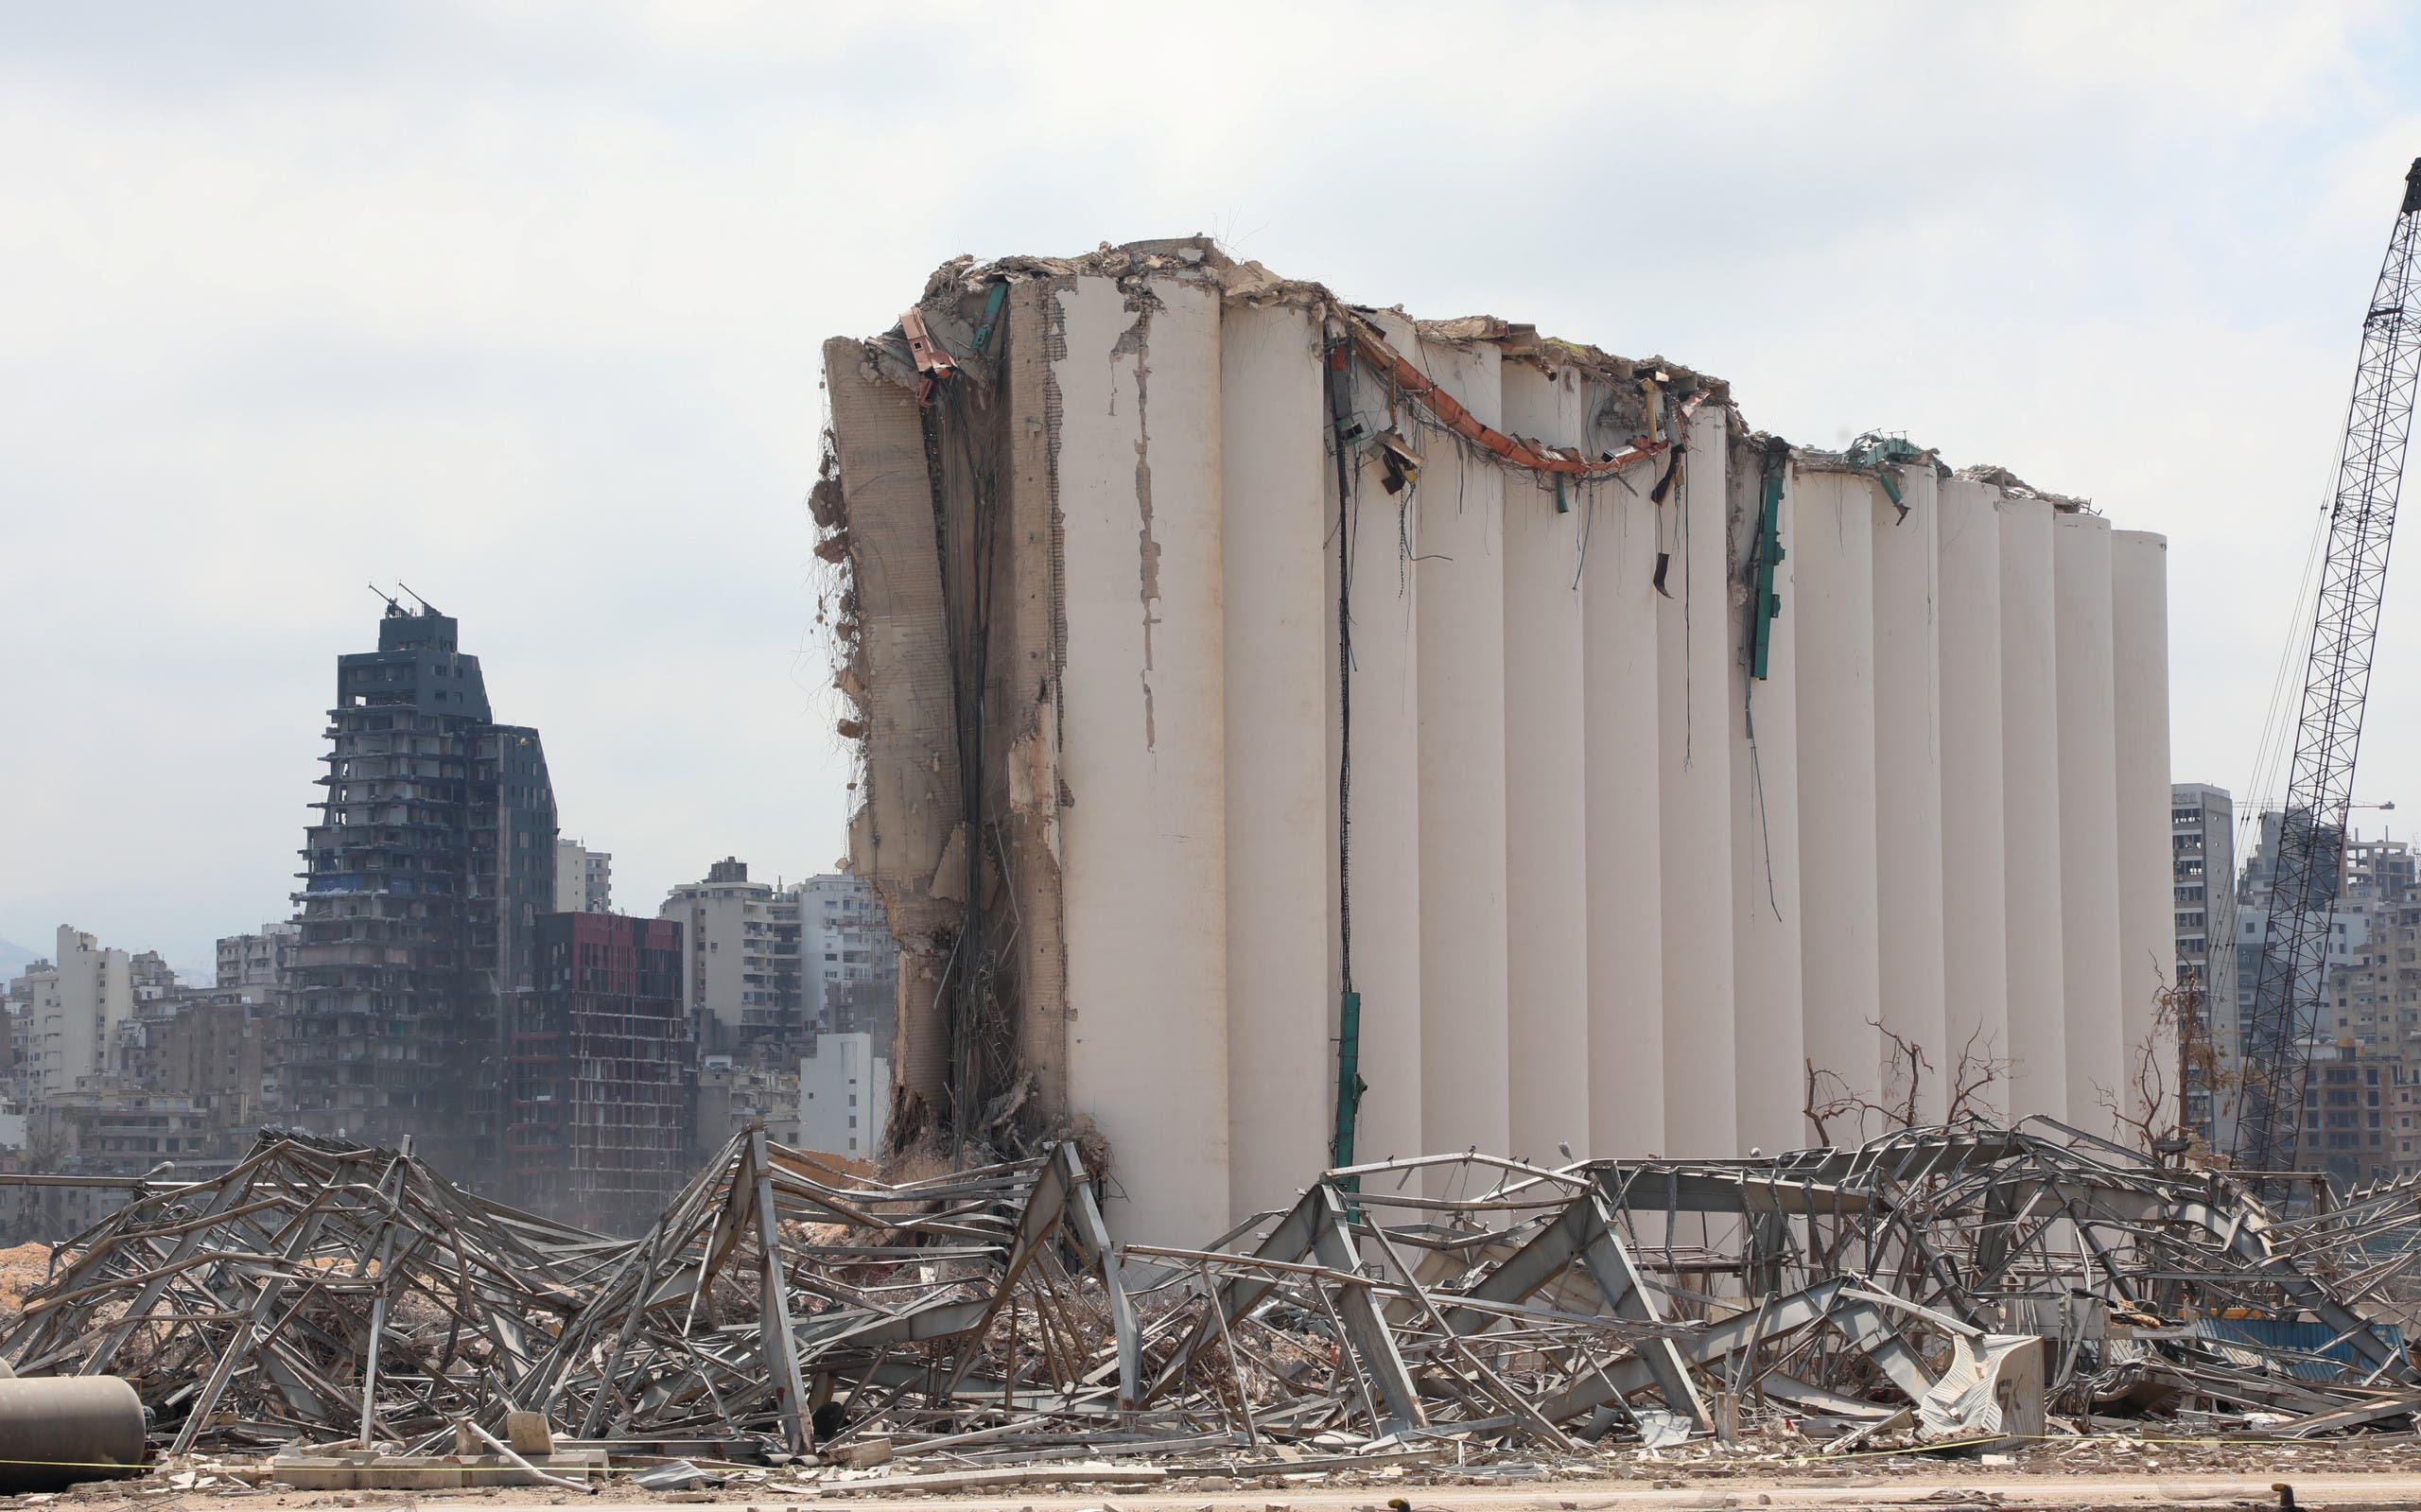 A view of the damaged grain silo following the explosion at Beirut port, in Beirut, Lebanon August 26, 2020. (Reuters)